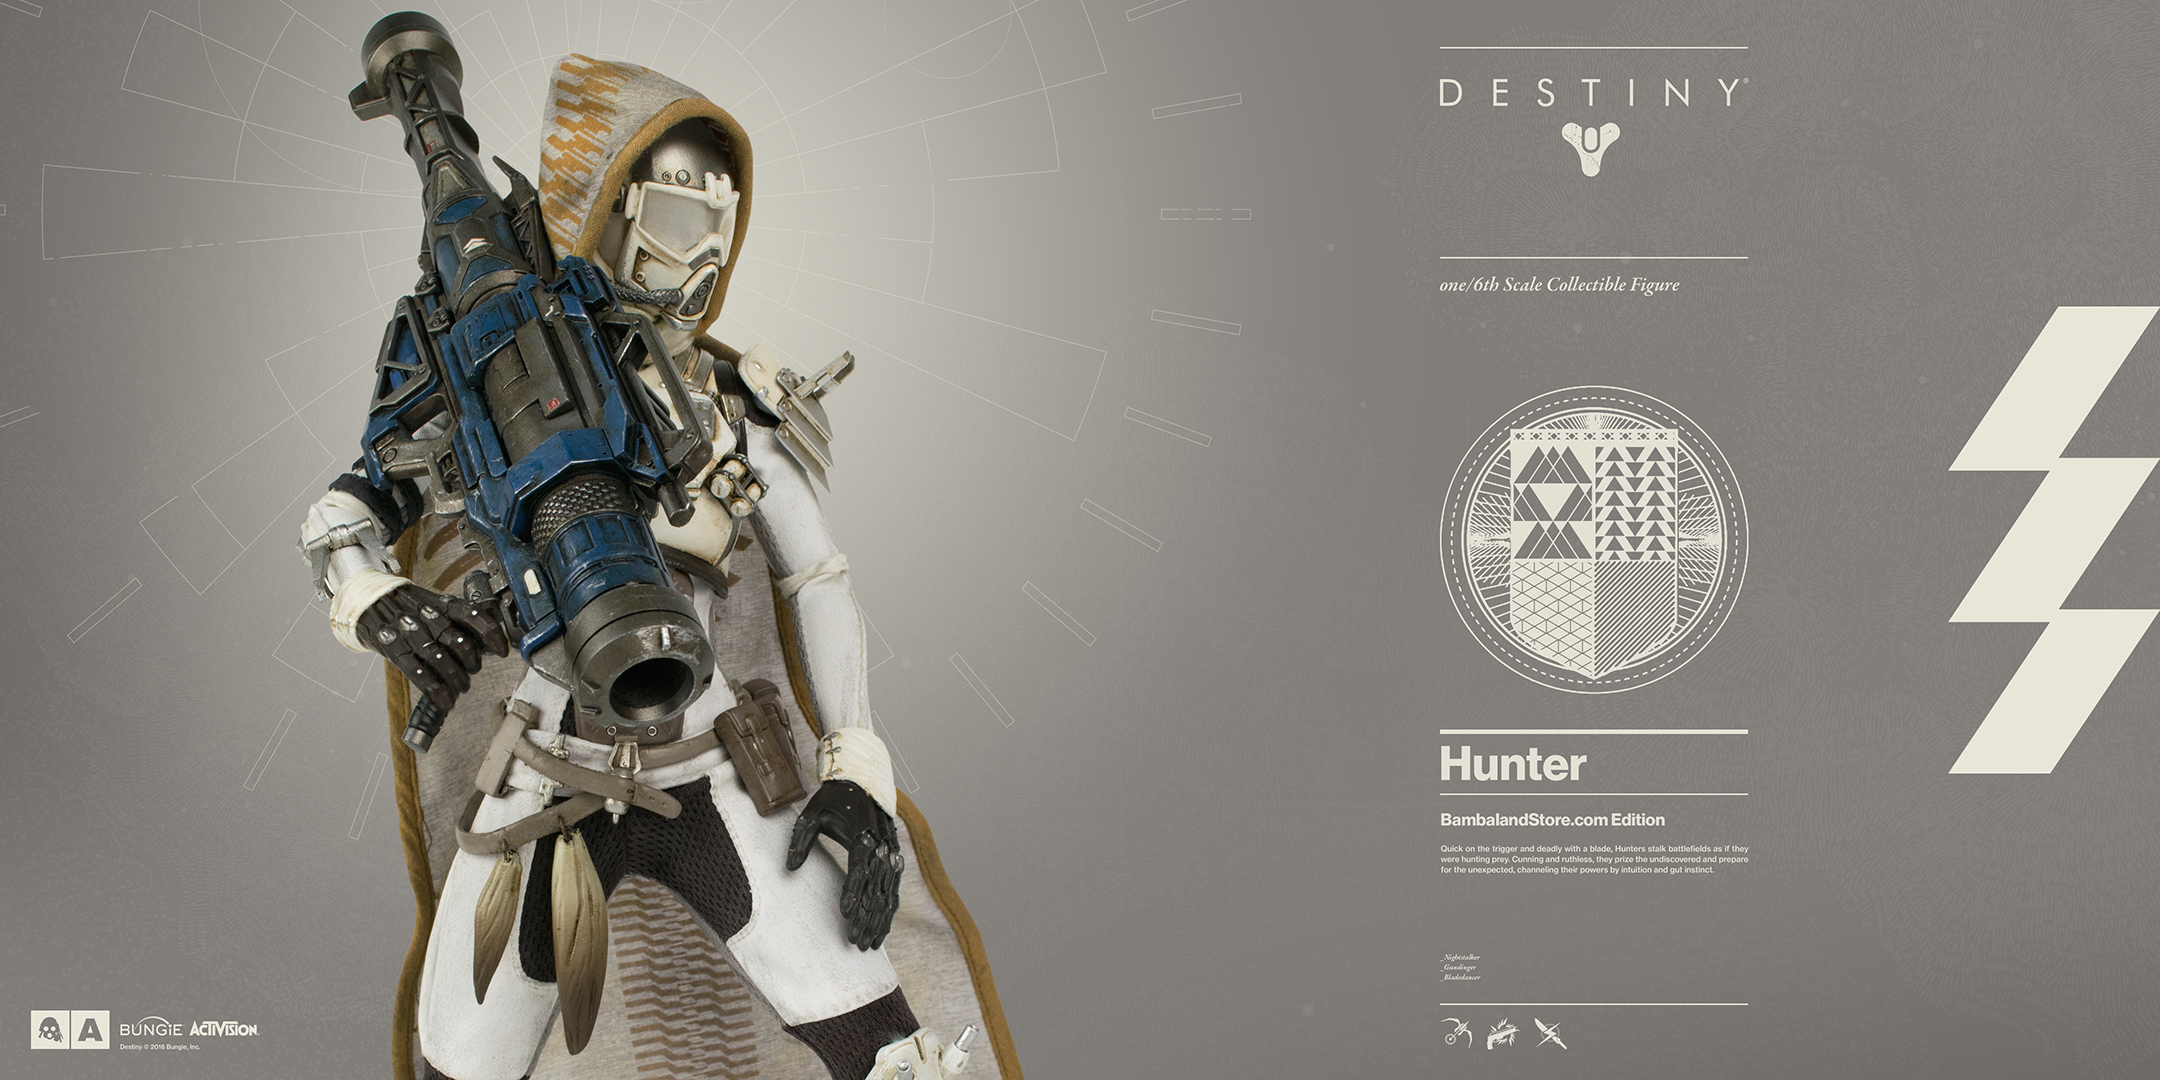 3A_Destiny_Hunter_BambalandStoreEdition_Landscape_Left_v001.png